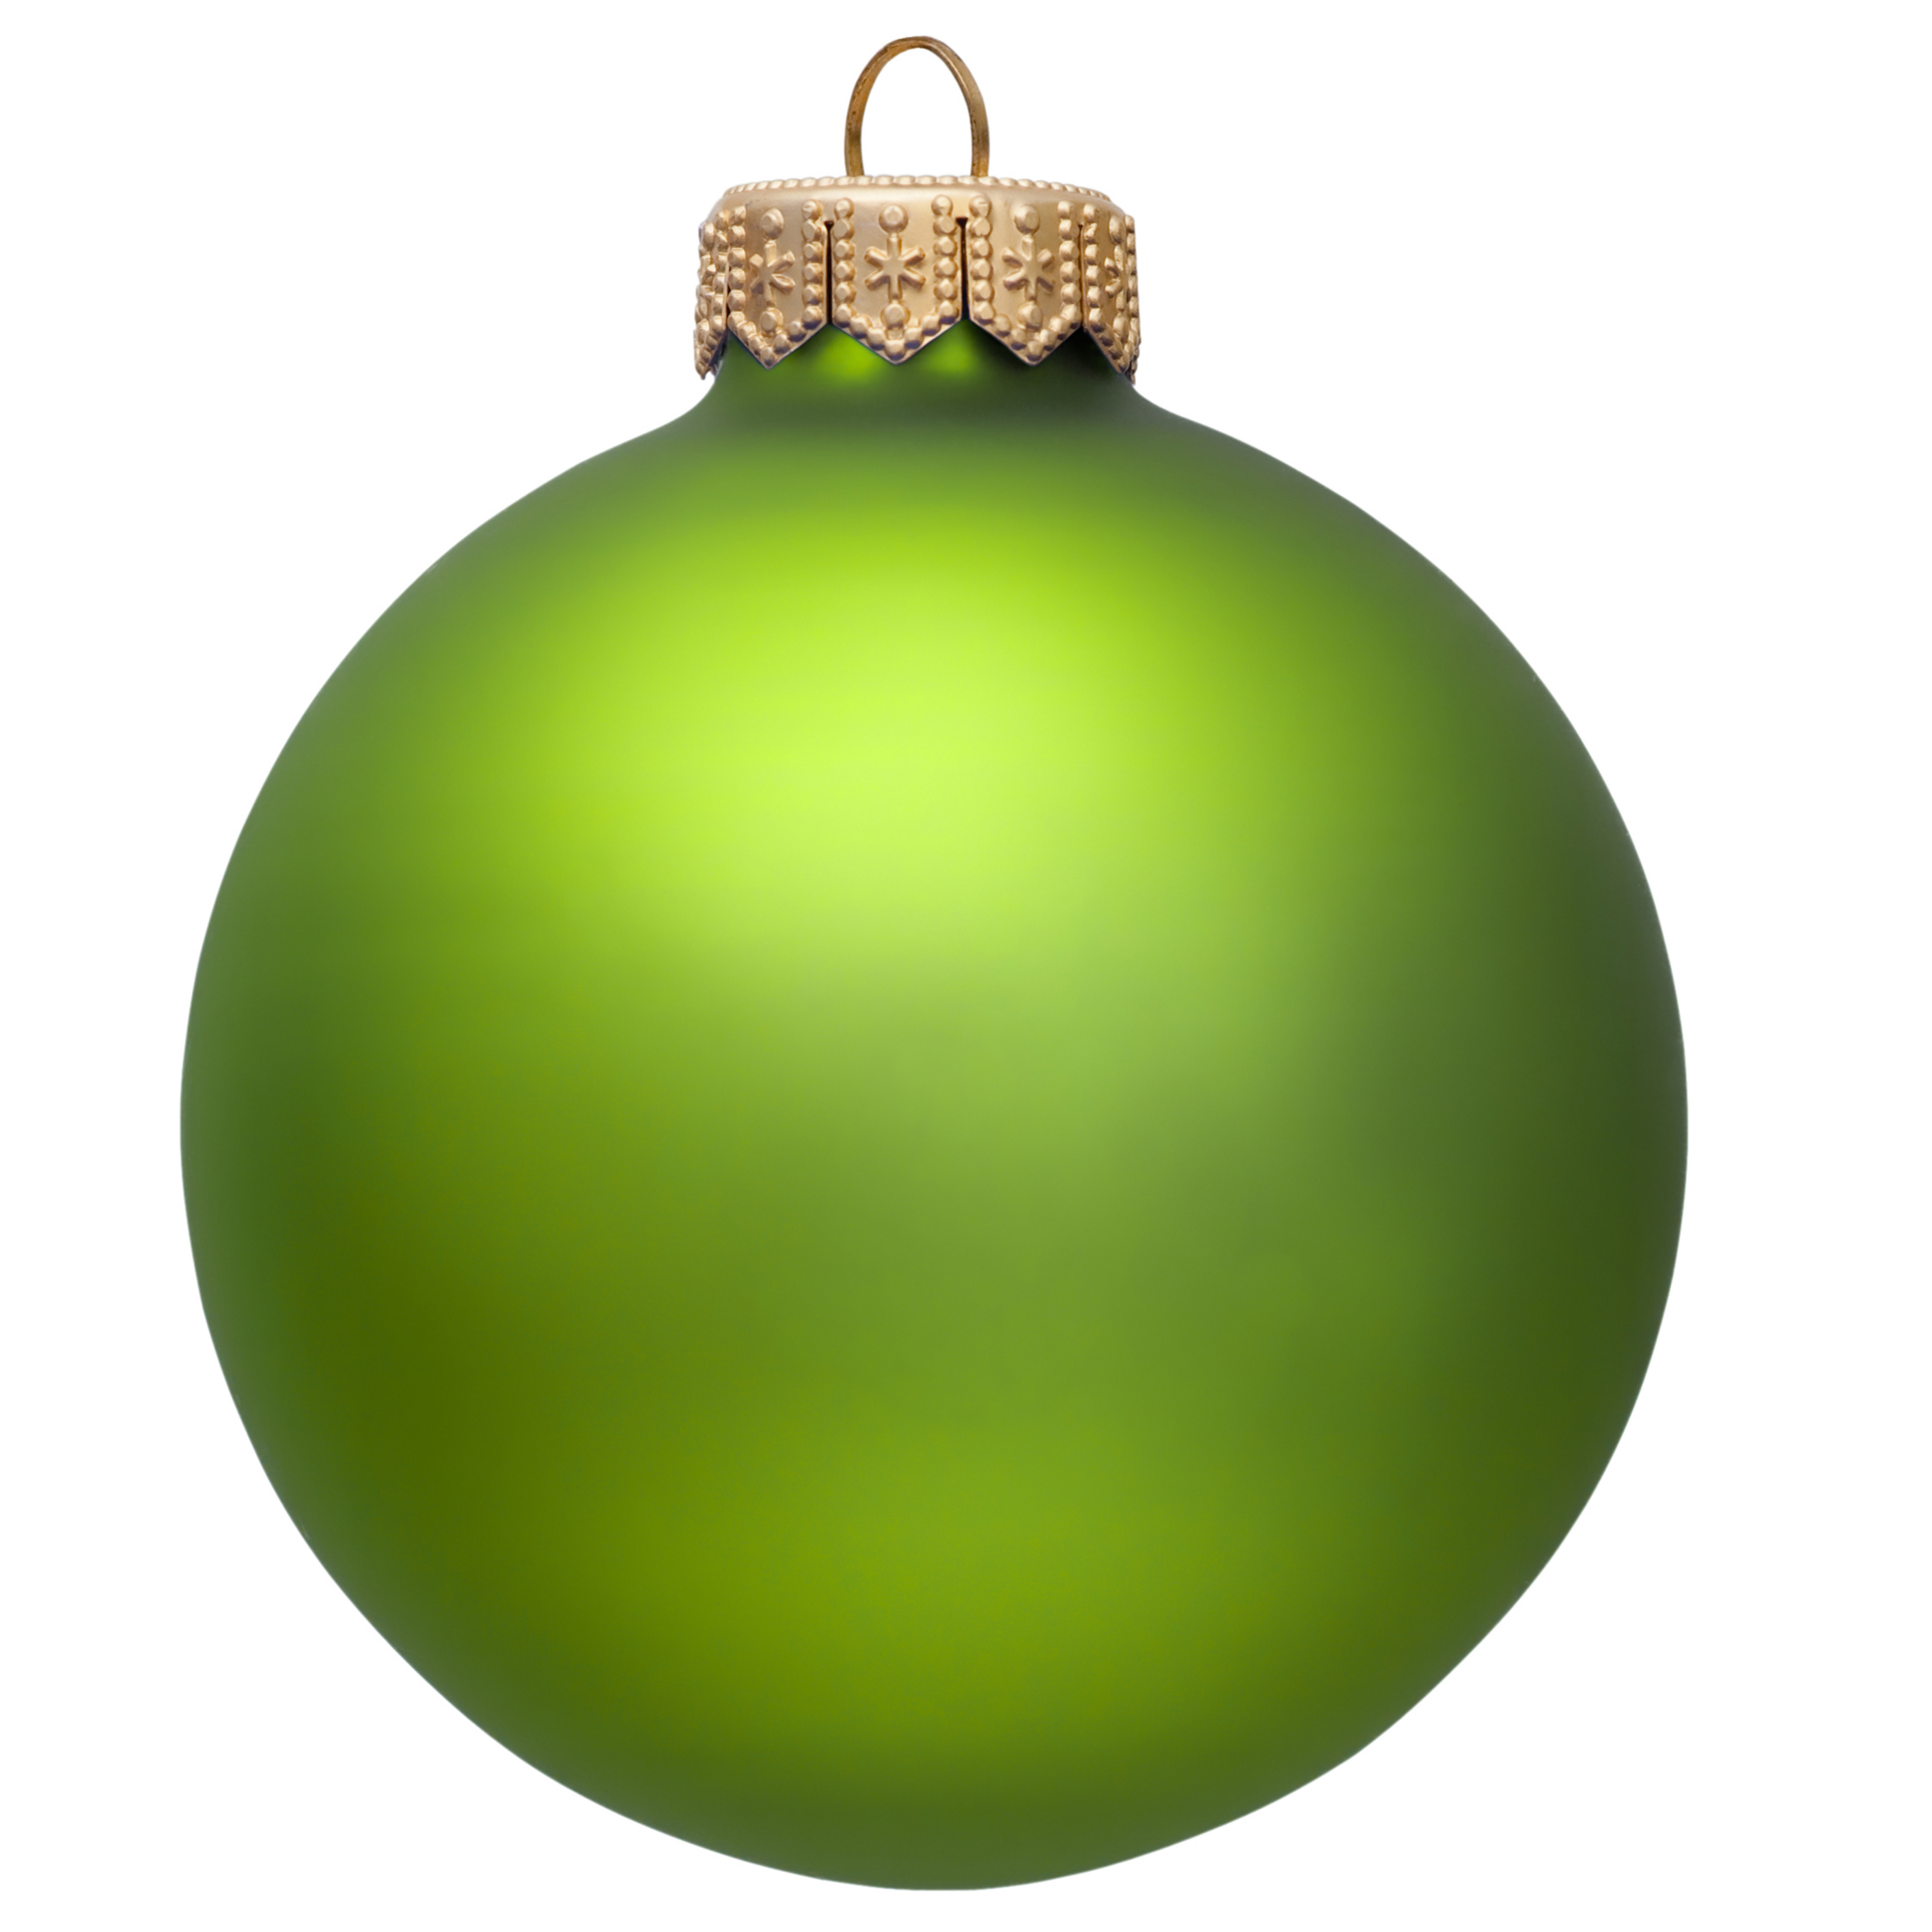 Christmas Ball Clipart.Ball Bulb Clipart 20 Free Cliparts Download Images On